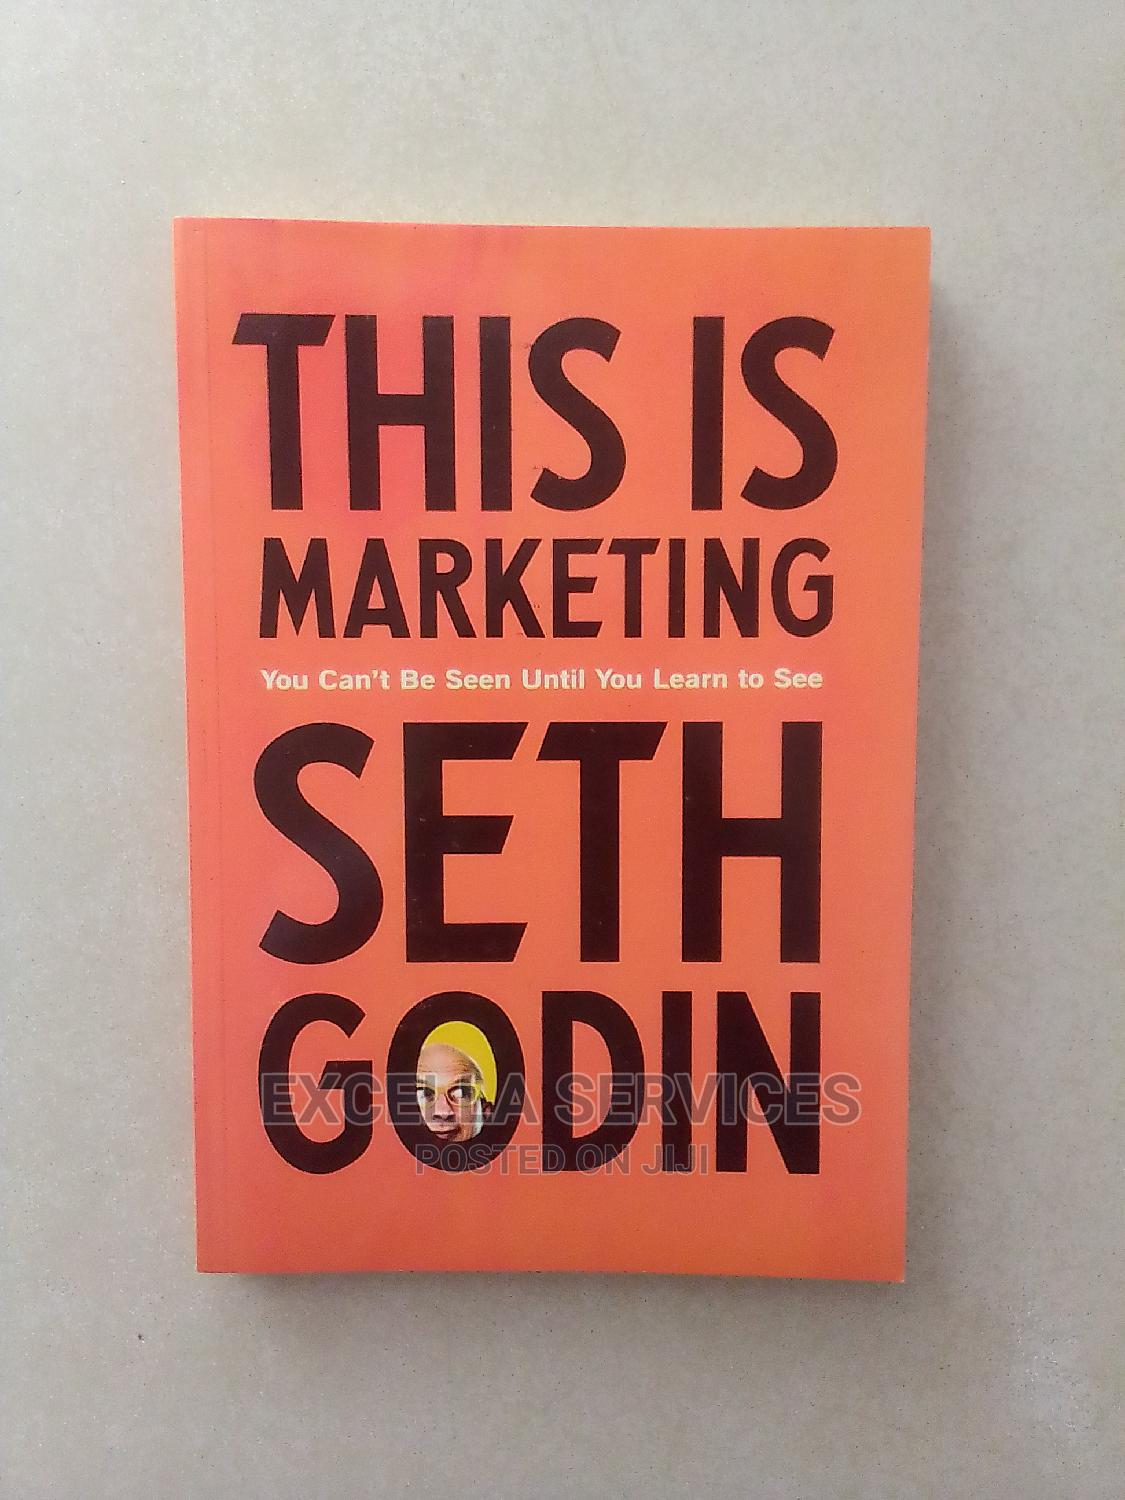 Archive: This Is Marketing by Seth Godin